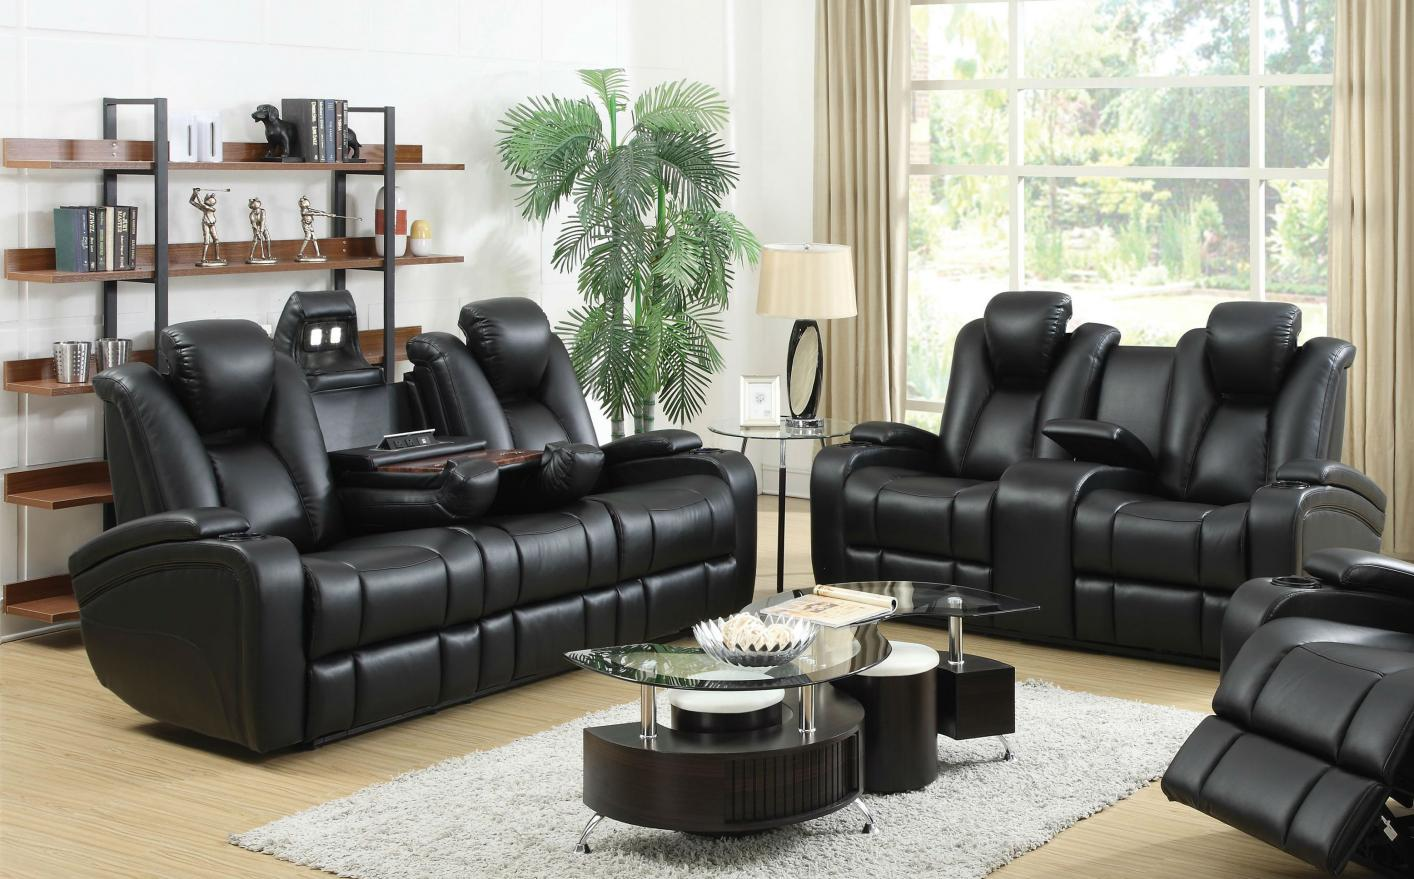 black leather power reclining sofa and loveseat set steal a sofa rh stealasofa com leather power reclining sofa and loveseat set Tampa Power Reclining Leather Loveseat